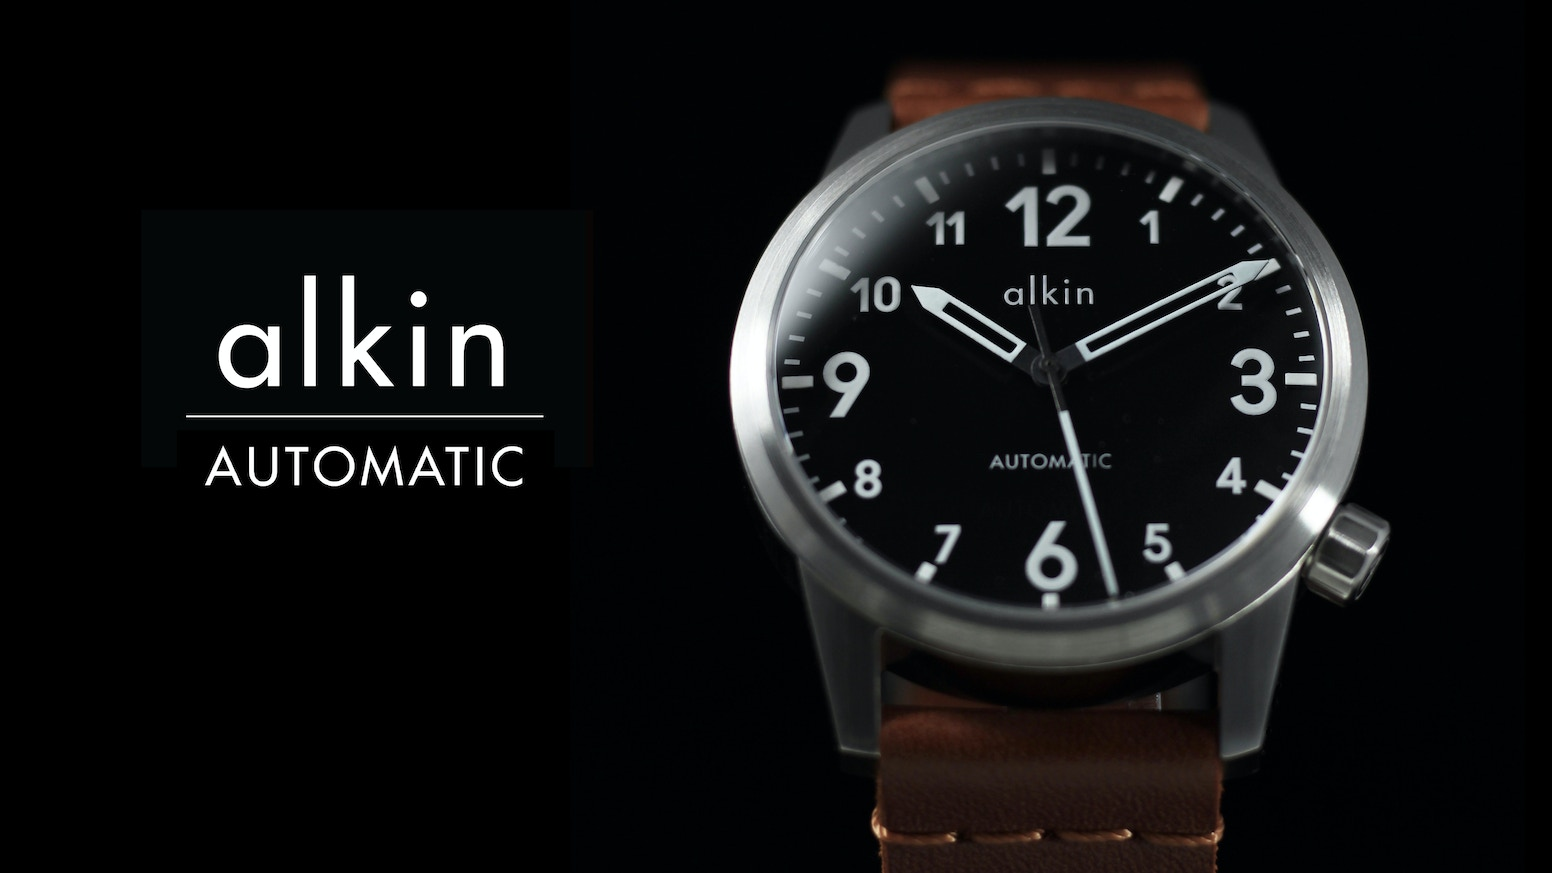 Simple, elegant design coupled with an automatic movement and modest price point.